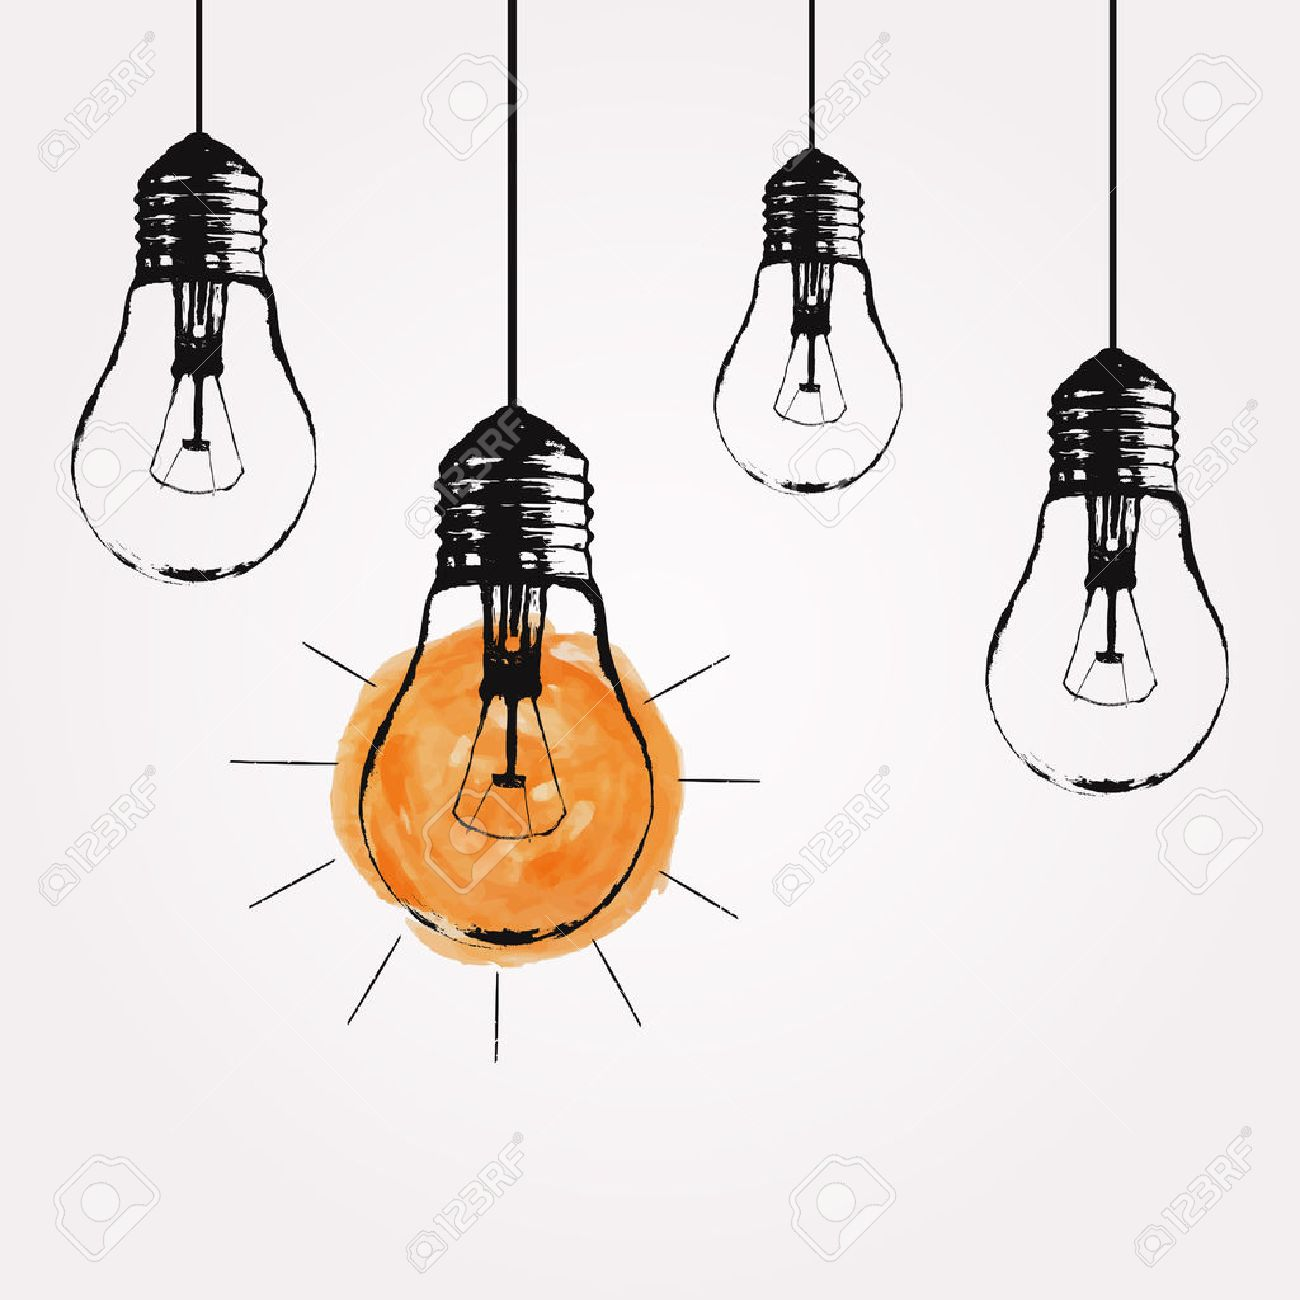 Vector grunge illustration with hanging light bulbs and place...